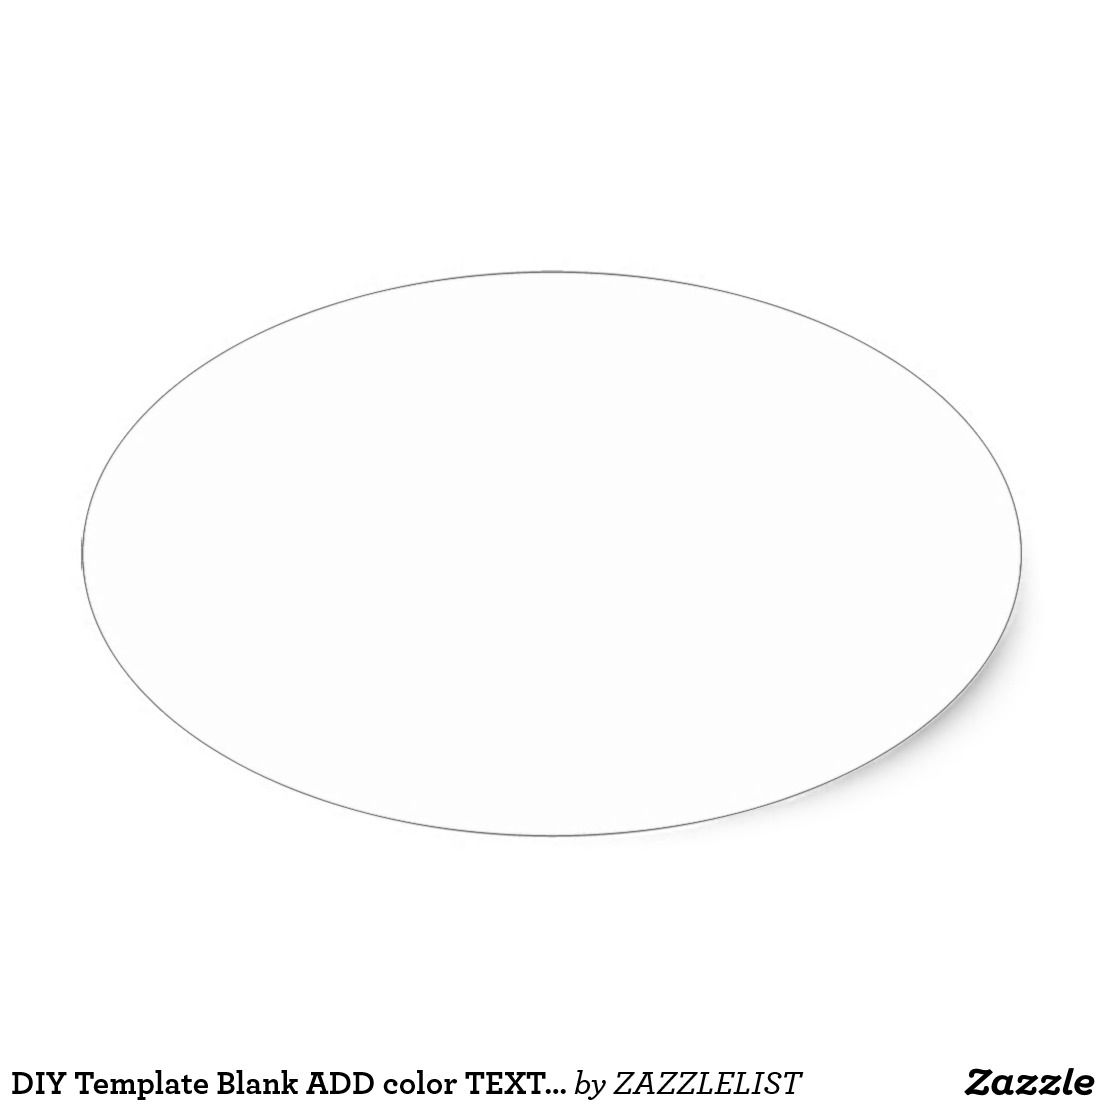 Diy Template Blank Add Color Text Image Photo Gift Oval Sticker